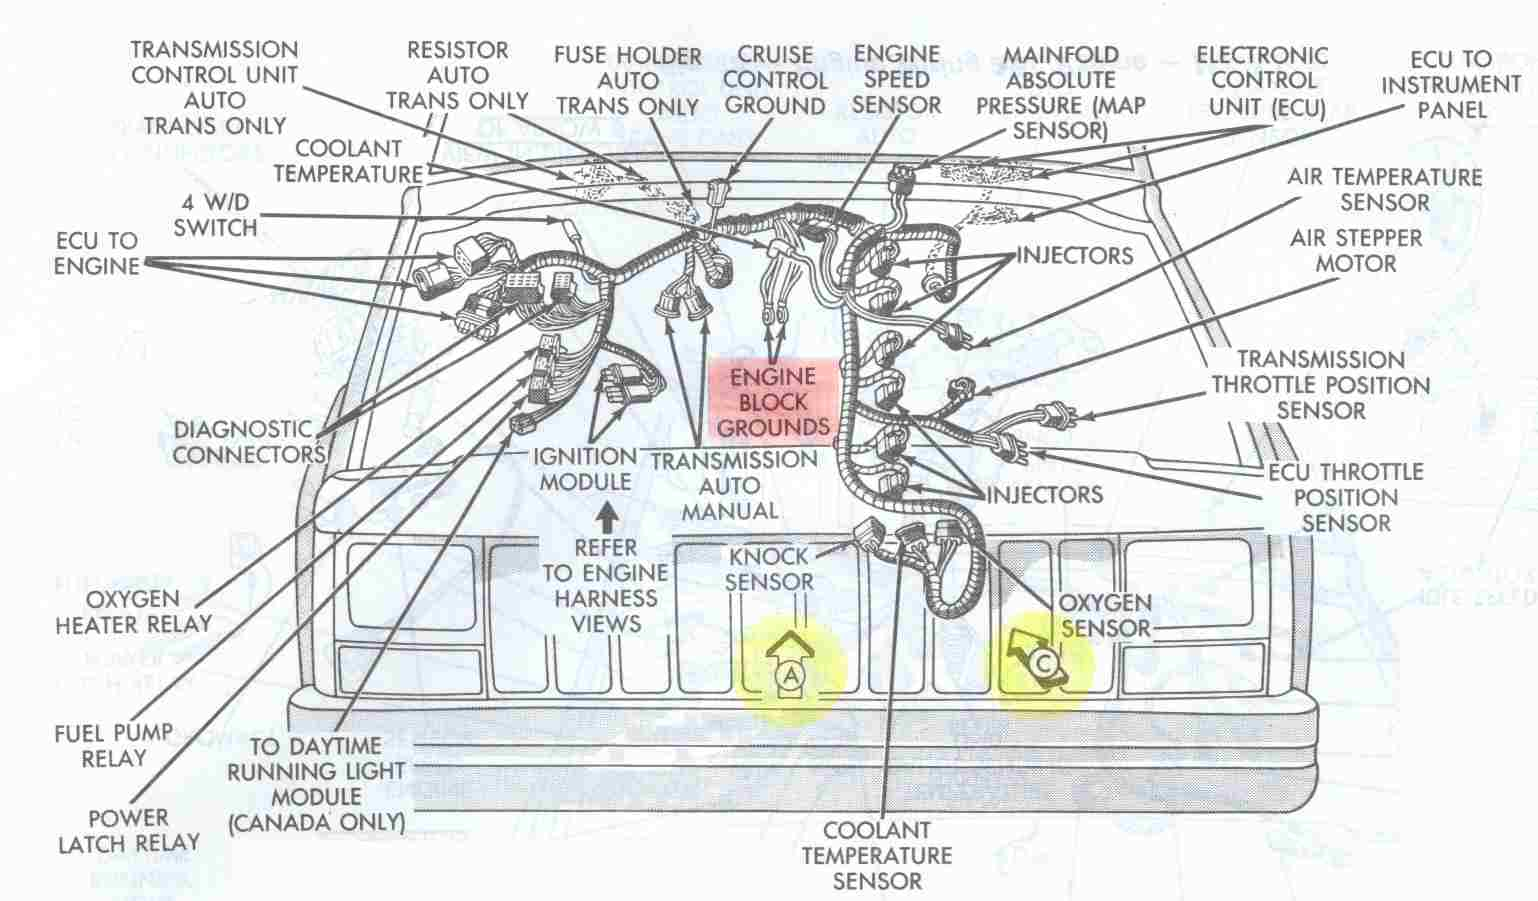 Electrical_Engine_Ground_Points_Overview jeep cherokee electrical diagnosing erratic behavior of engine 2007 Jeep Wrangler Wiring Diagram at webbmarketing.co